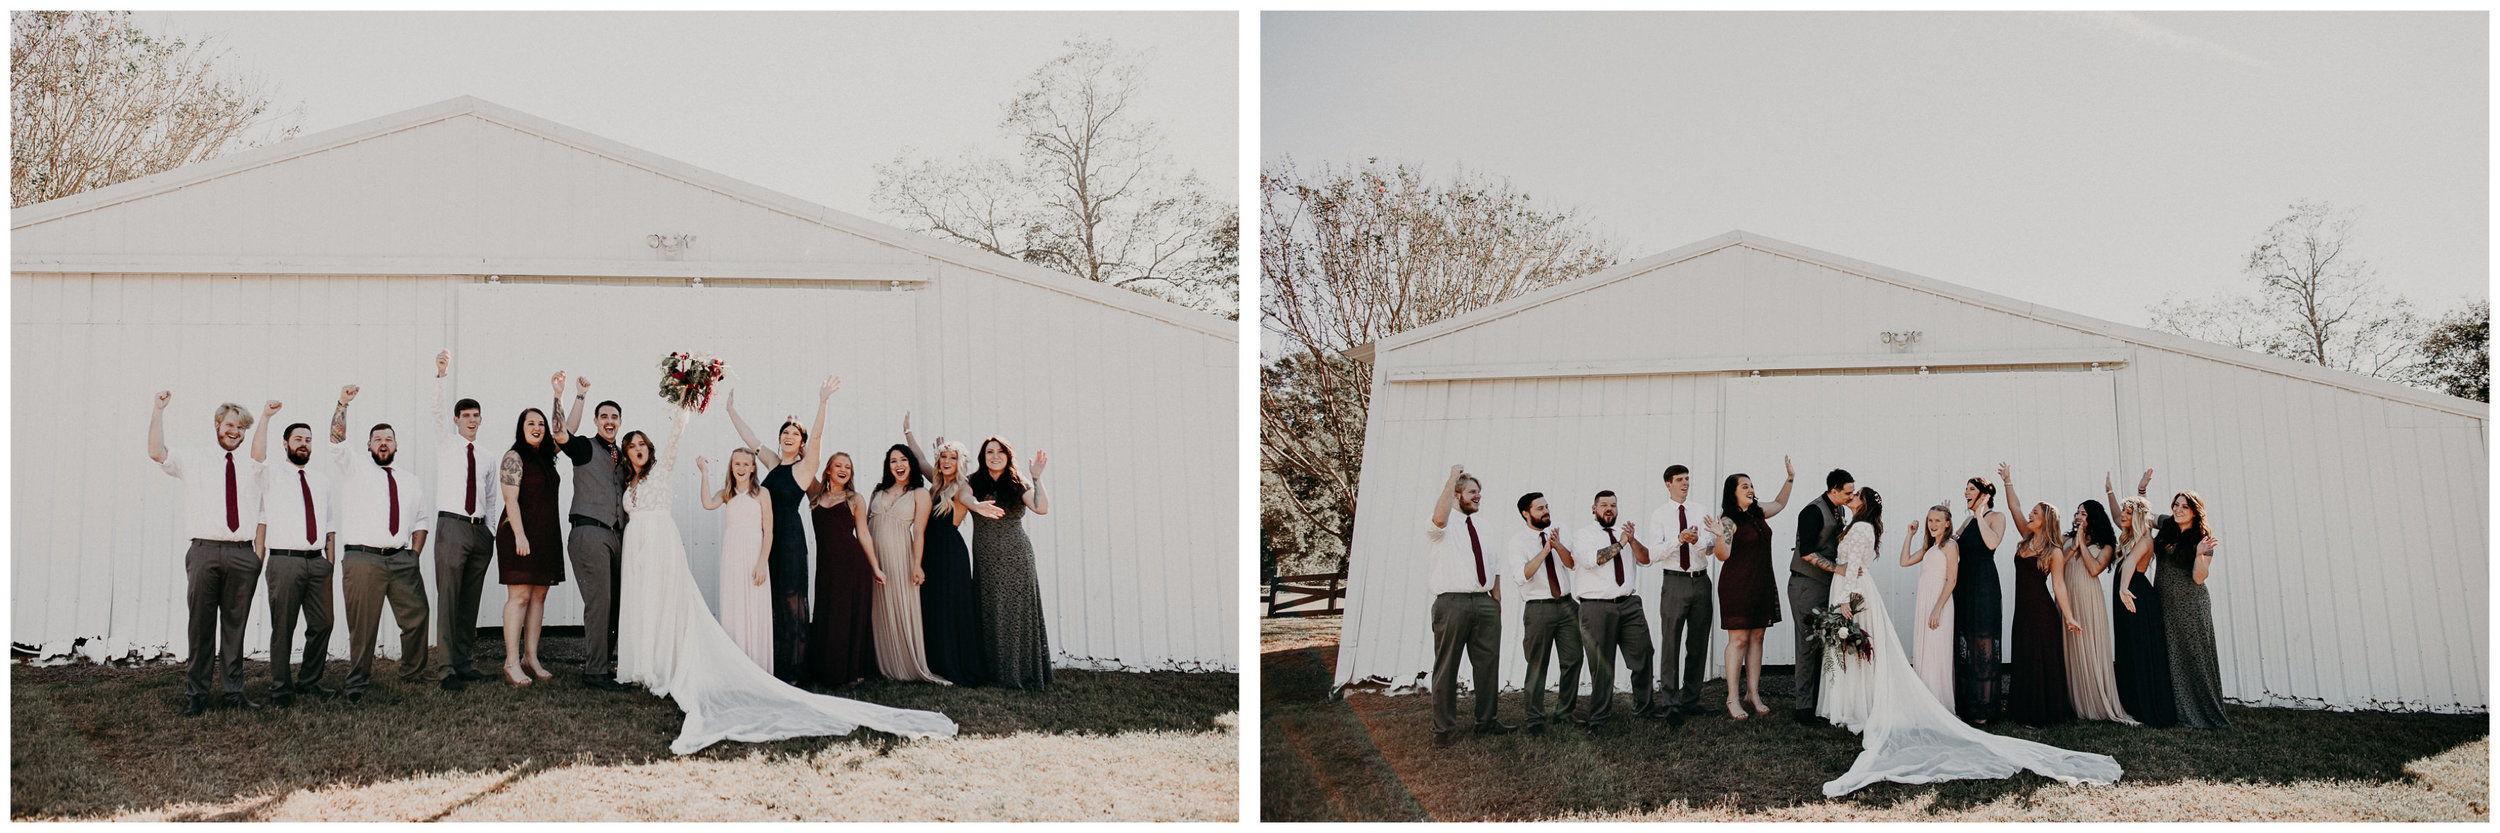 80 - Wedding bridal party and bride and groom portraits : Atlanta wedding photographer .jpg